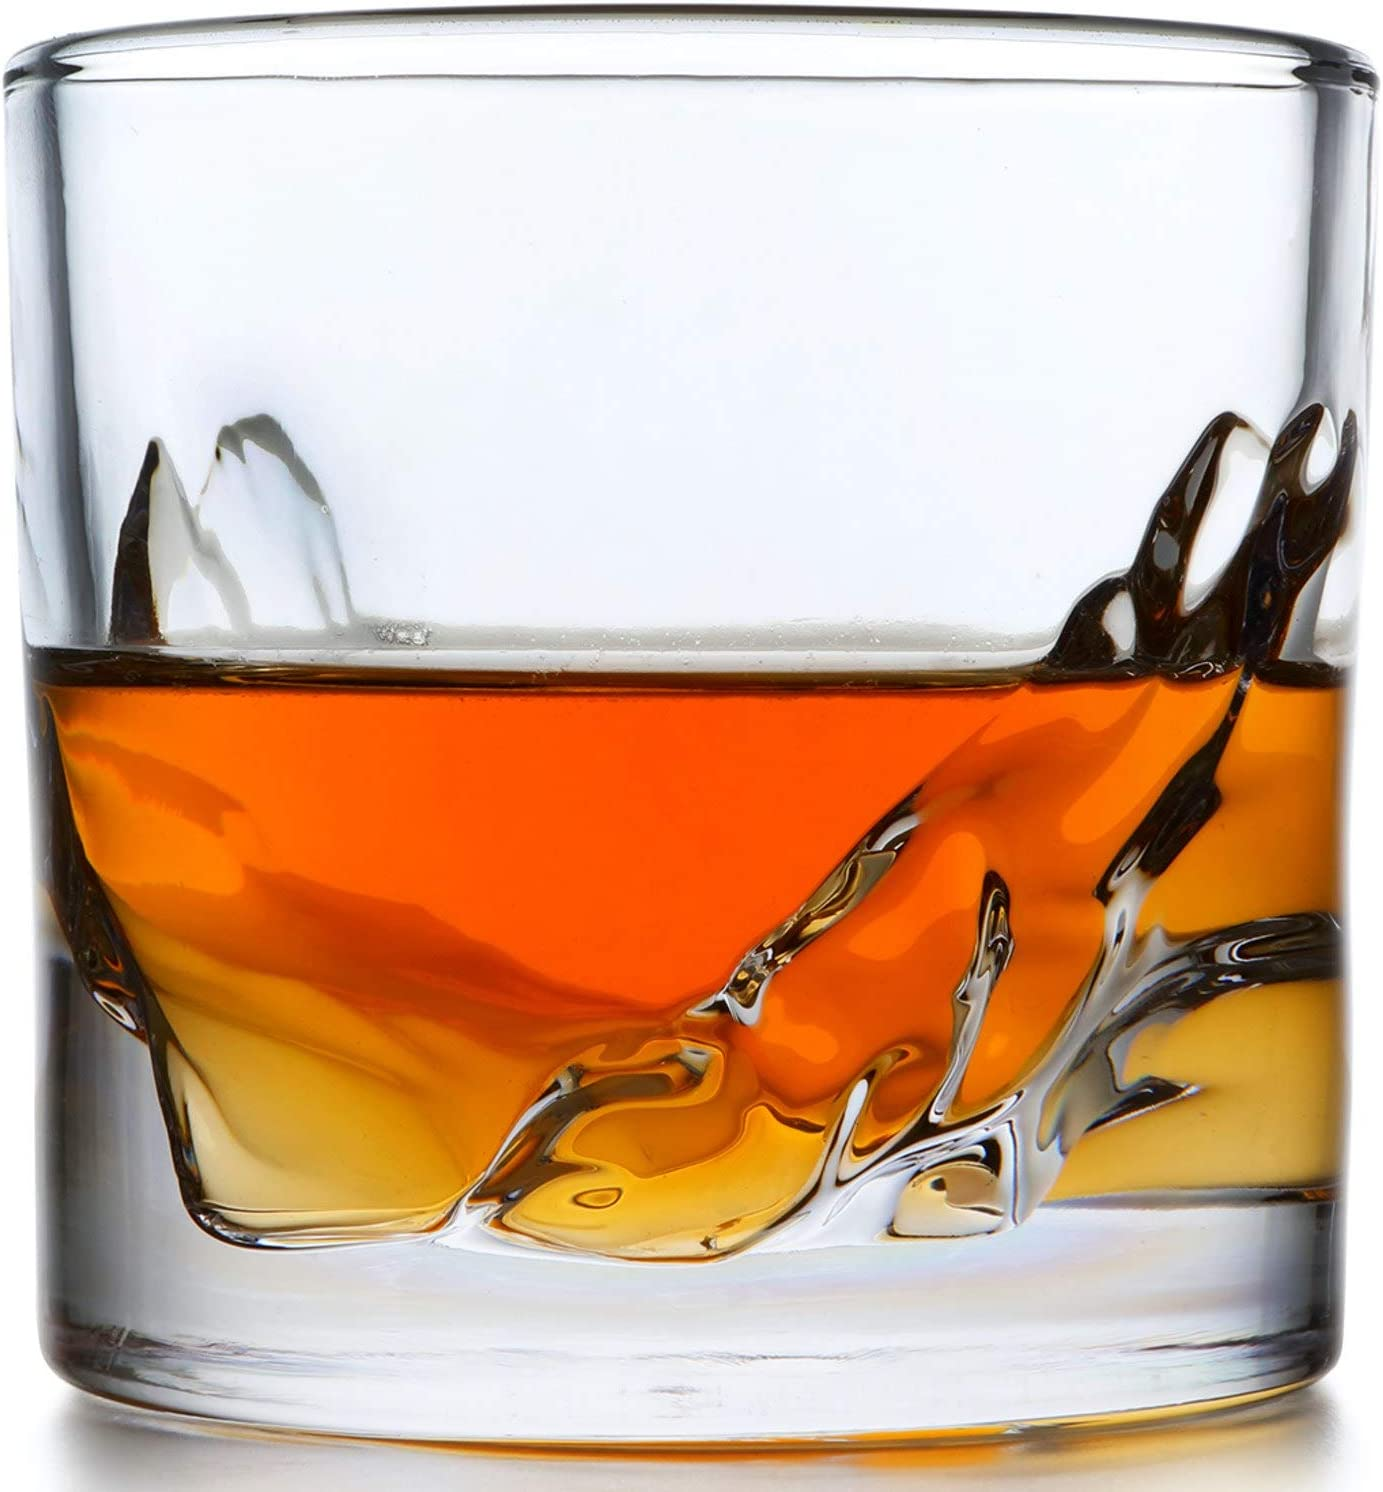 Whiskey Glass Set of 4: Heavy Whisky Tumbler Best as Old Fashioned Glasses, Scotch, Bourbon, or Bar Drinks in a Gorgeous Mountain Design with a Thick and Heavy Weighted Bottom Barware Accessories